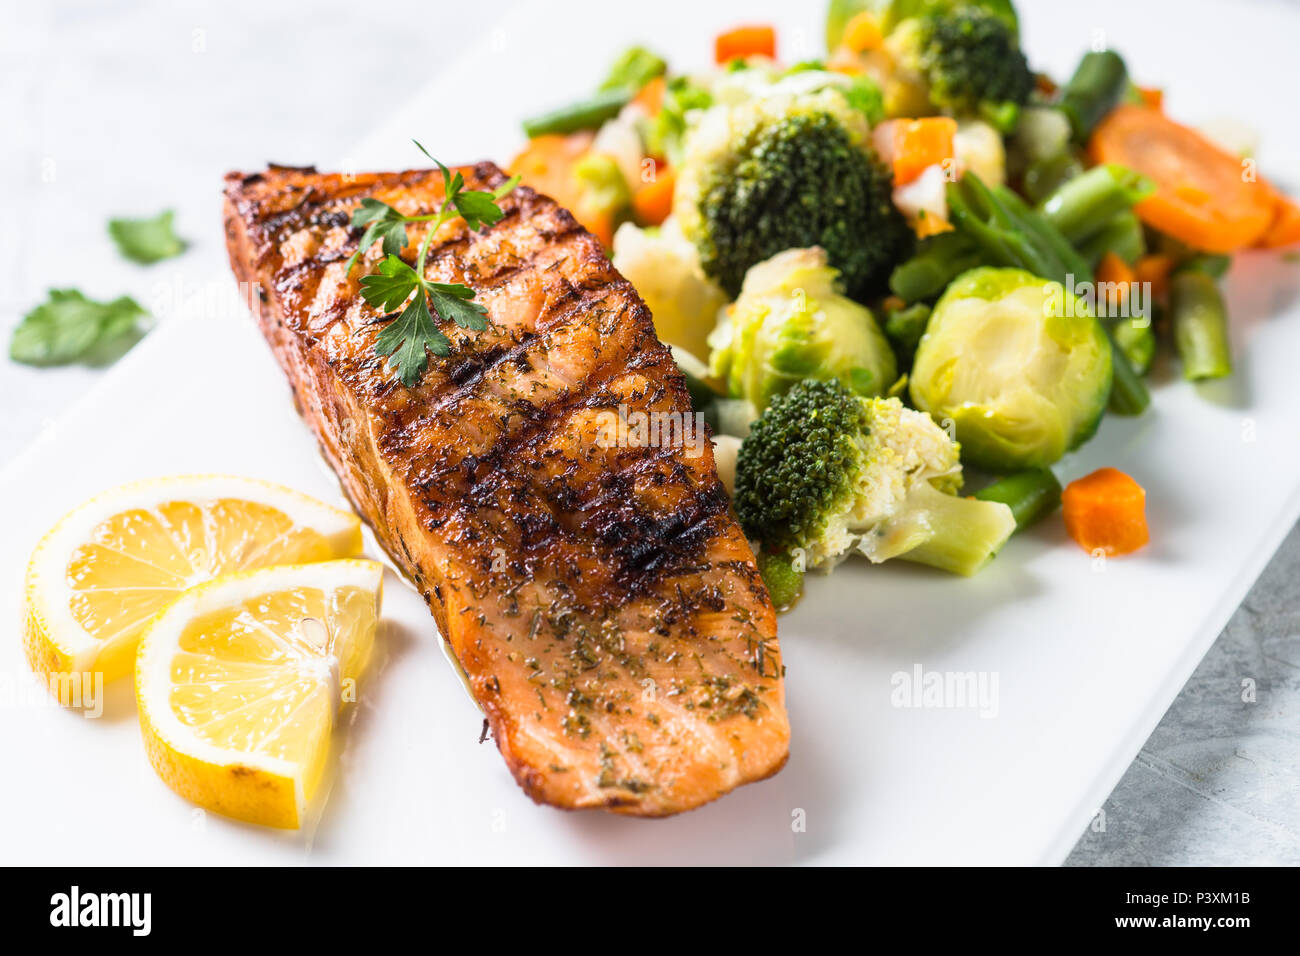 Fish And Vegetables Menu Grilled Salmon Fish Fillet With Vegetables